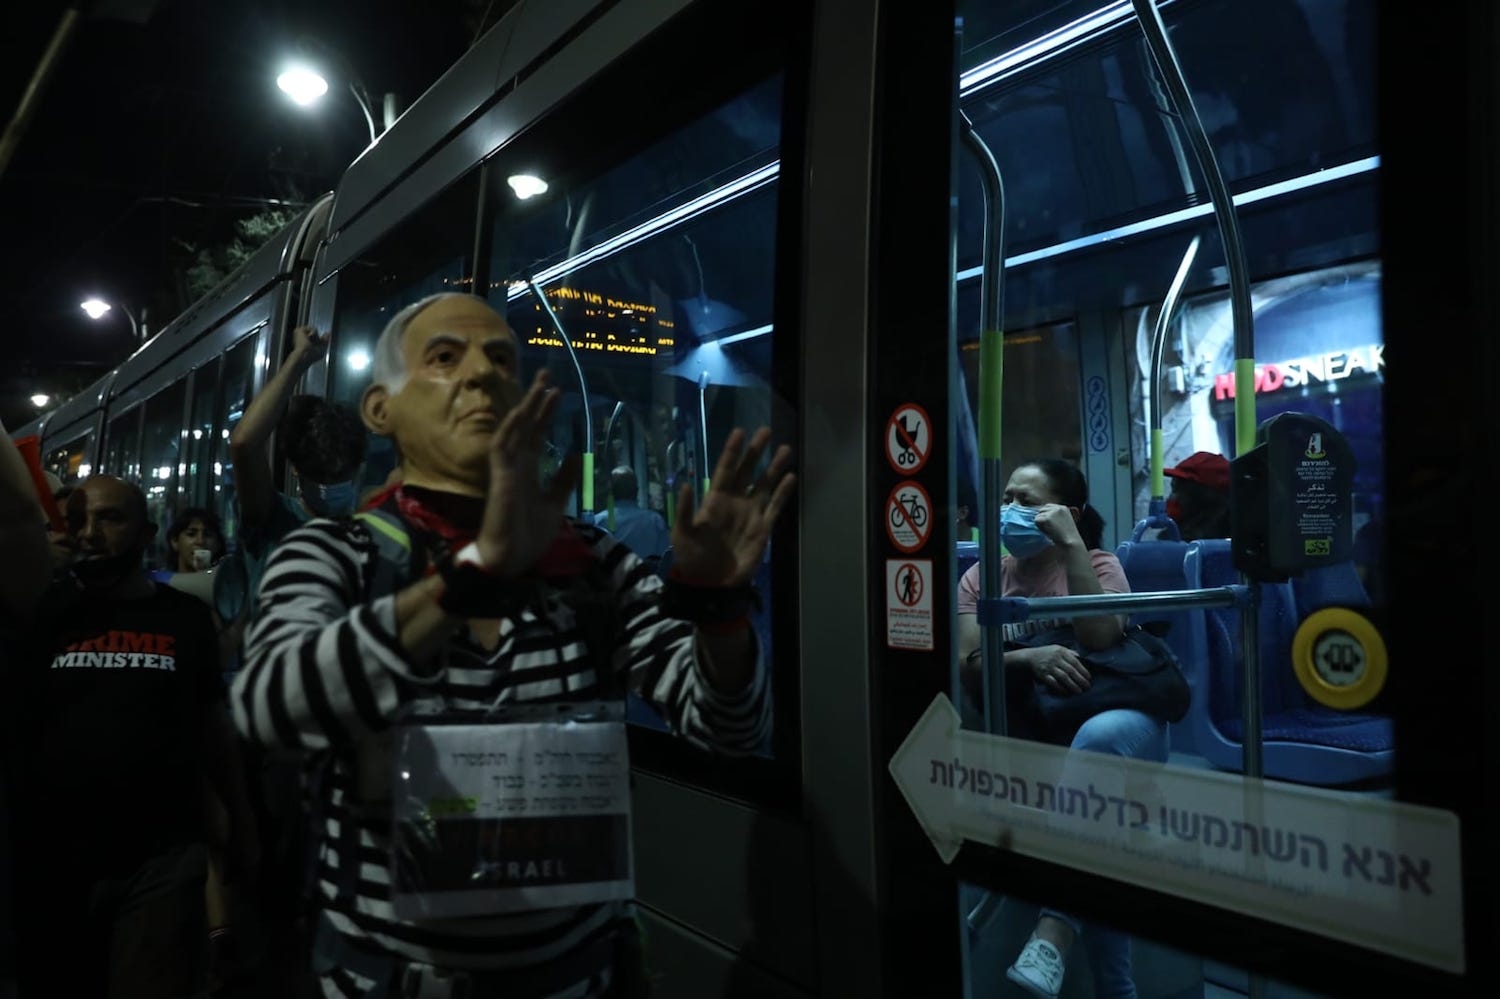 A demonstrator dressed up as Netanyahu in prisoner clothing seen standing alongside the Jerusalem Light Rail during anti-Netanyahu protests in the city, August 29, 2020. (Oren Ziv)